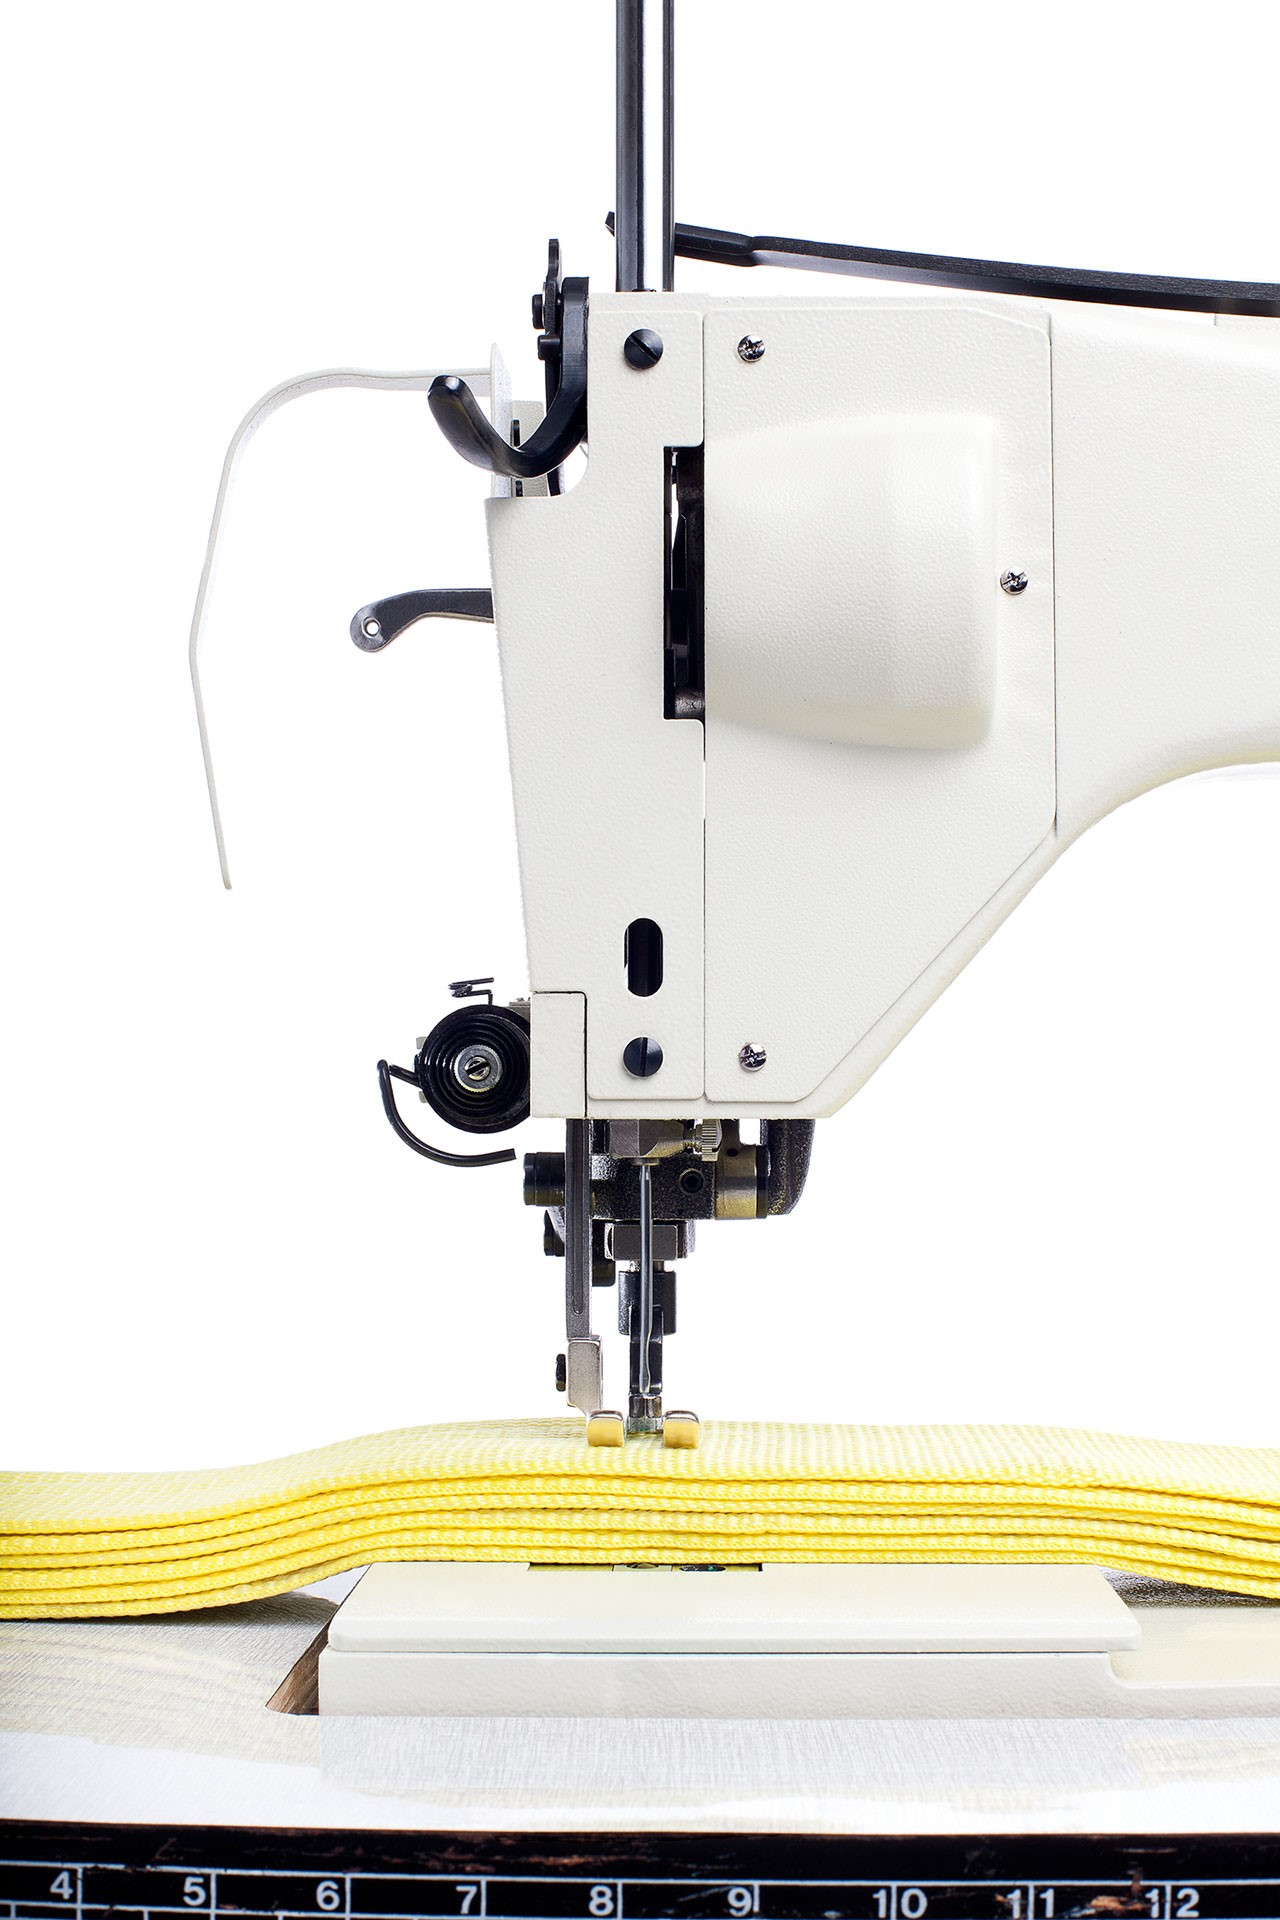 Class 7 Industrial Sewing Machine